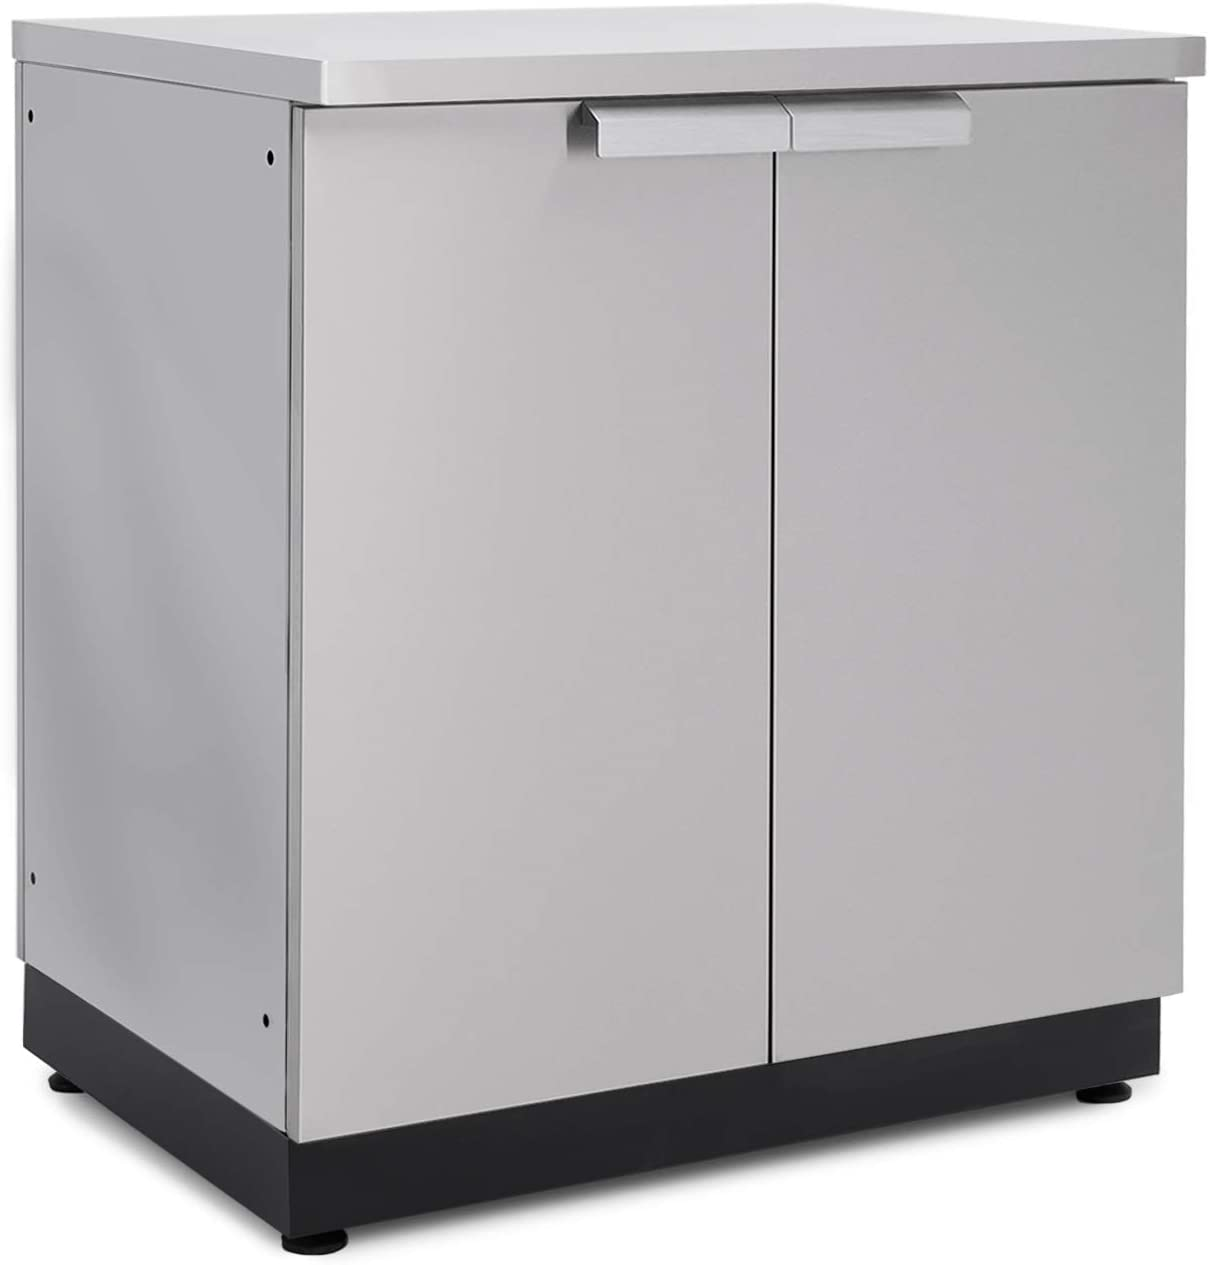 NewAge Products Inc. 65000 NewAge Products Outdoor Kitchen Cabinet, 2 Door,  Stainless Steel